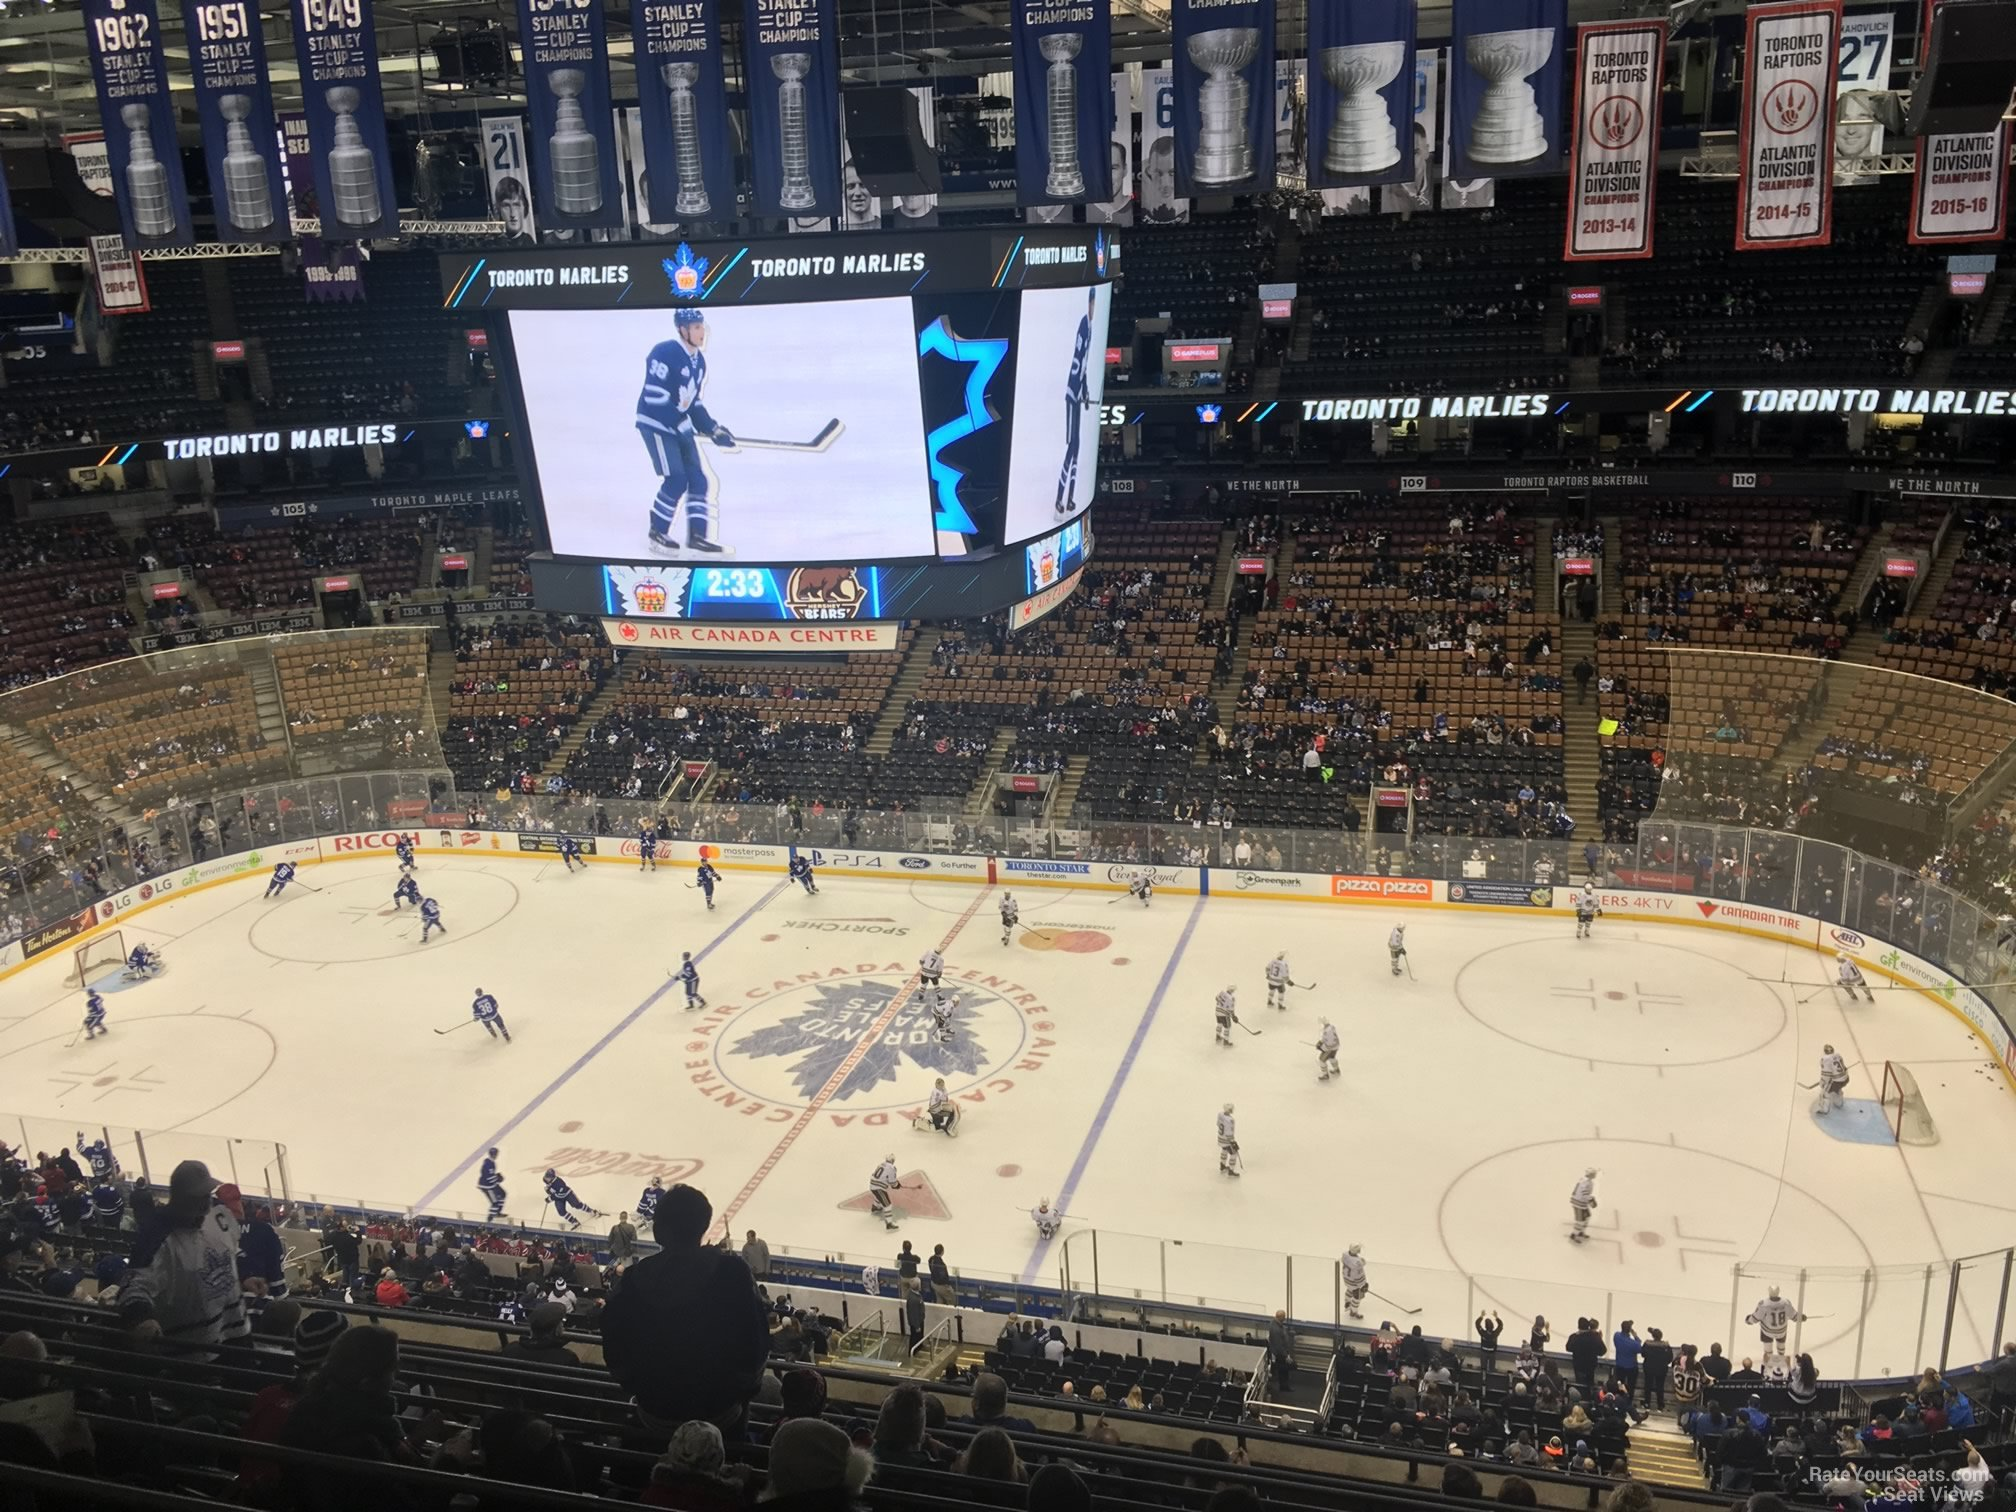 Toronto Maple Leafs Seat View for Scotiabank Arena Section 320, Row 10